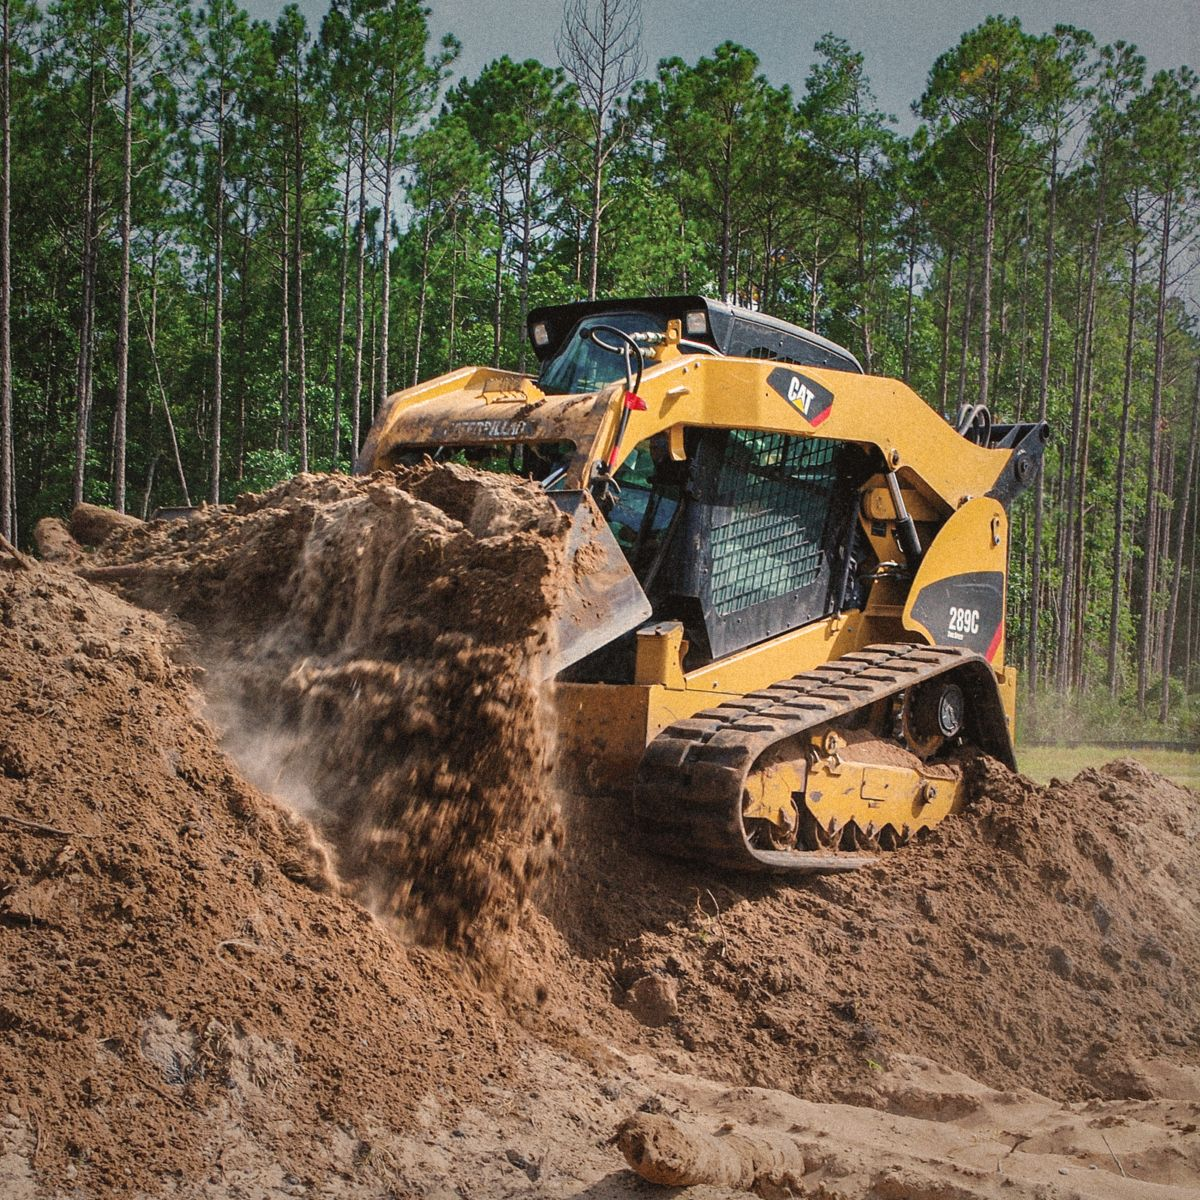 The D3 Series Compact Track and Skid Steer Loaders are the newest performance-driven machines from Caterpillar®.